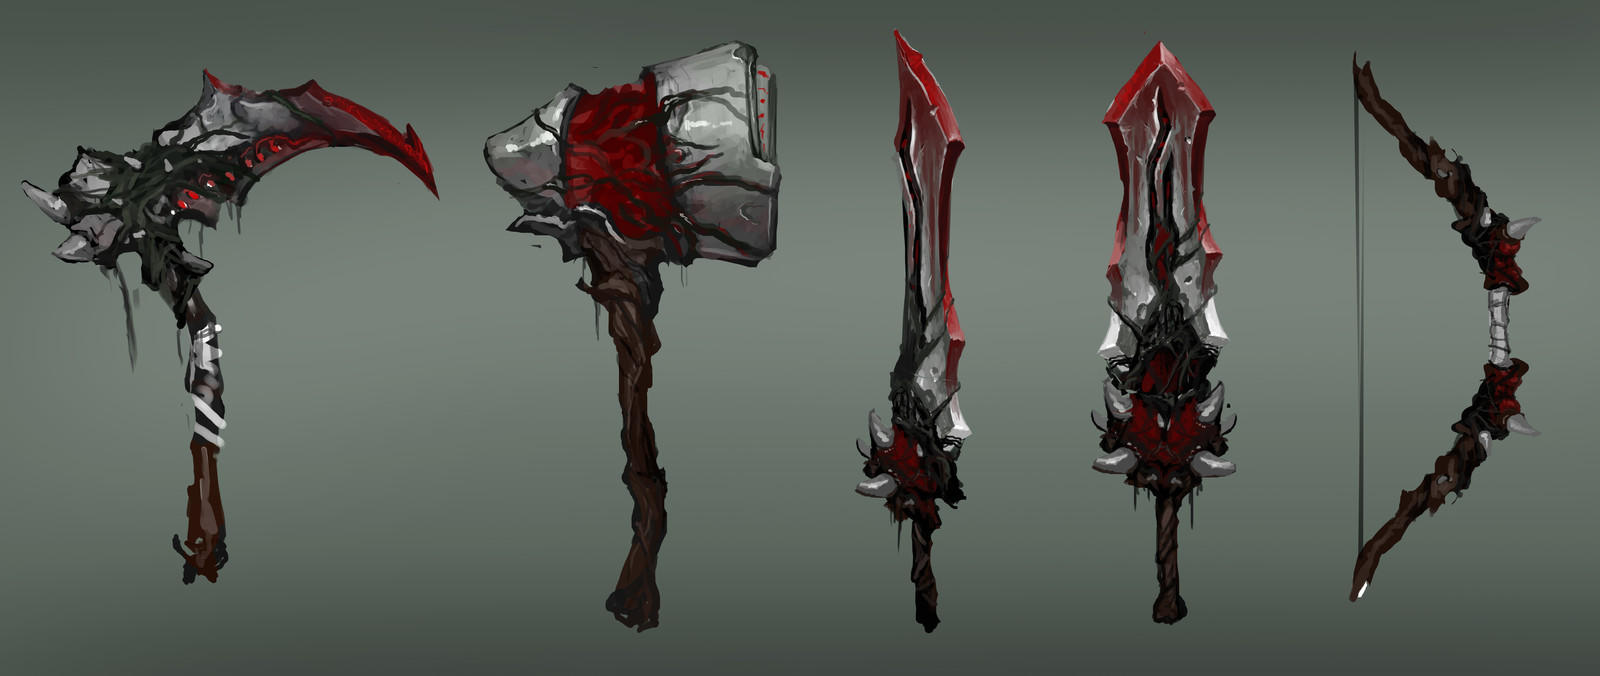 Poison Weapon Concepts